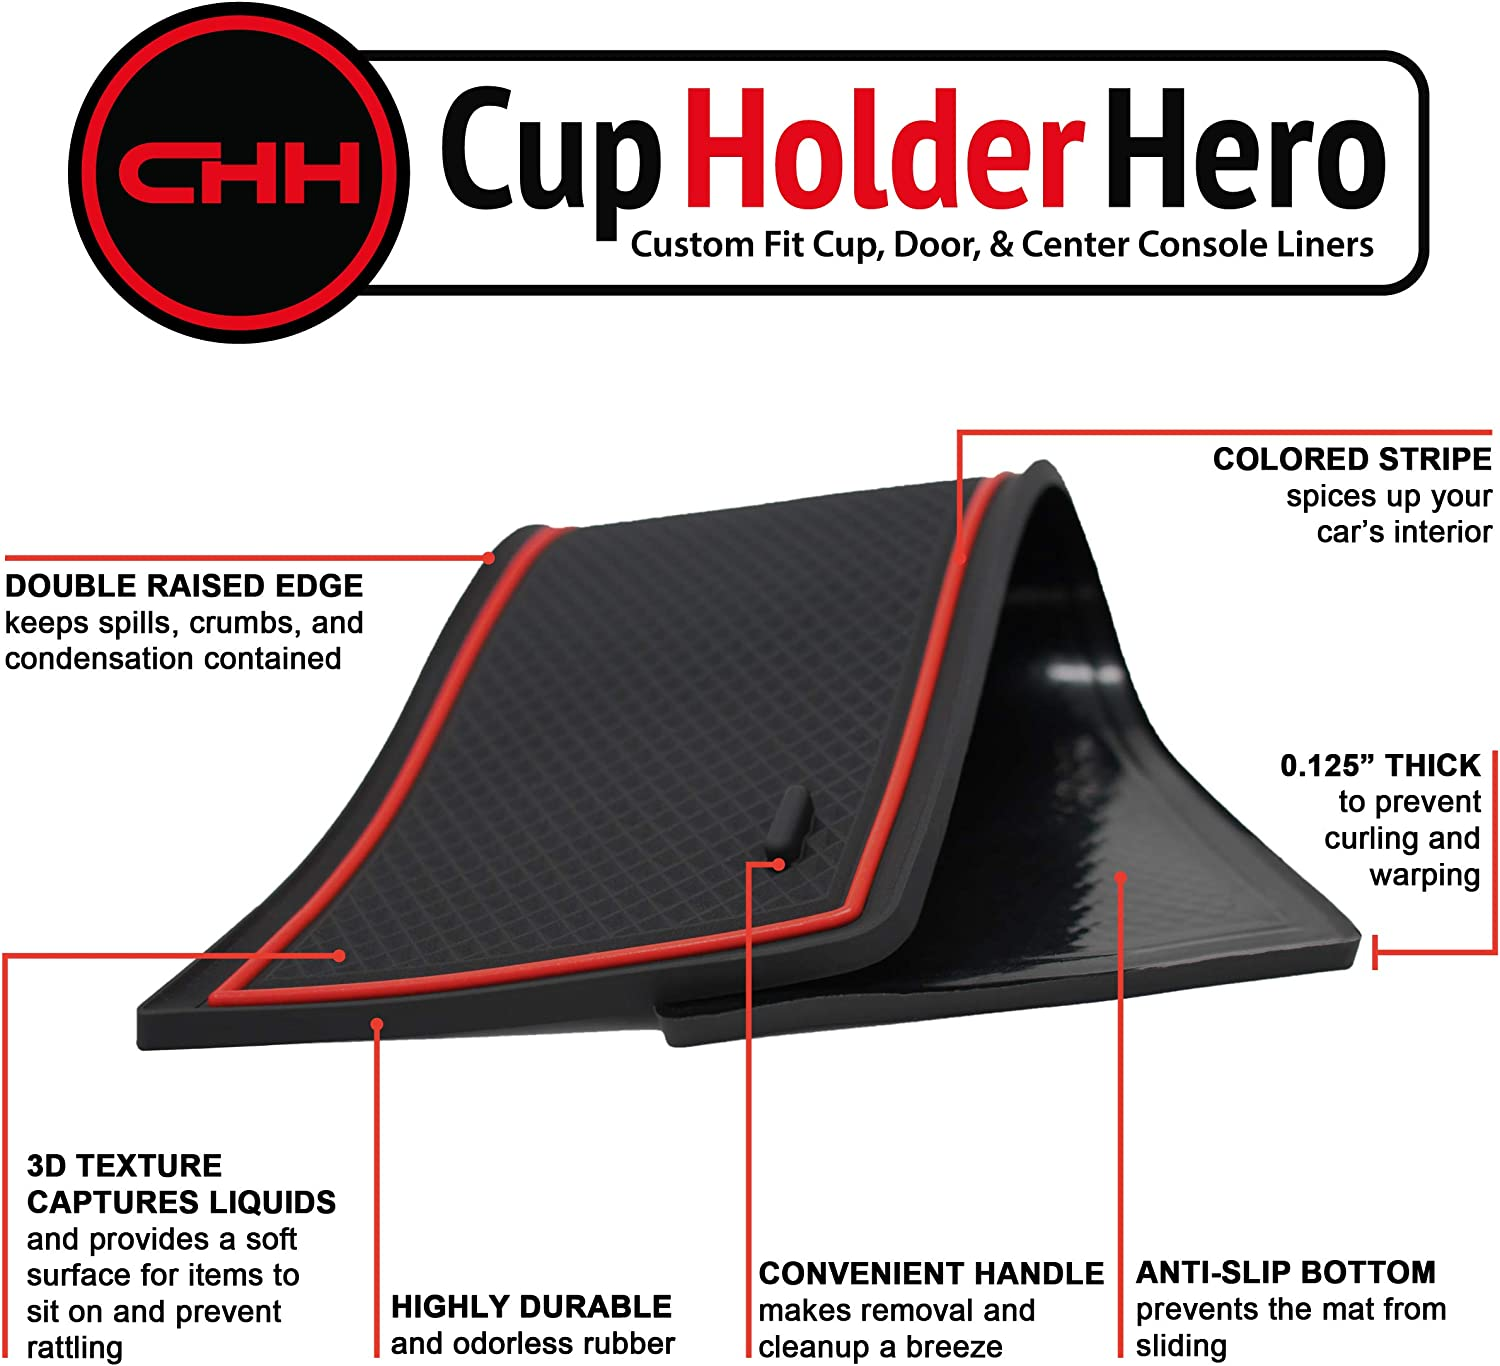 CupHolderHero for Chevy Equinox Accessories 2018-2021 Premium Custom Interior Non-Slip Anti Dust Cup Holder Inserts Center Console Liner Mats Door Pocket Liners 14-pc Set Red Trim